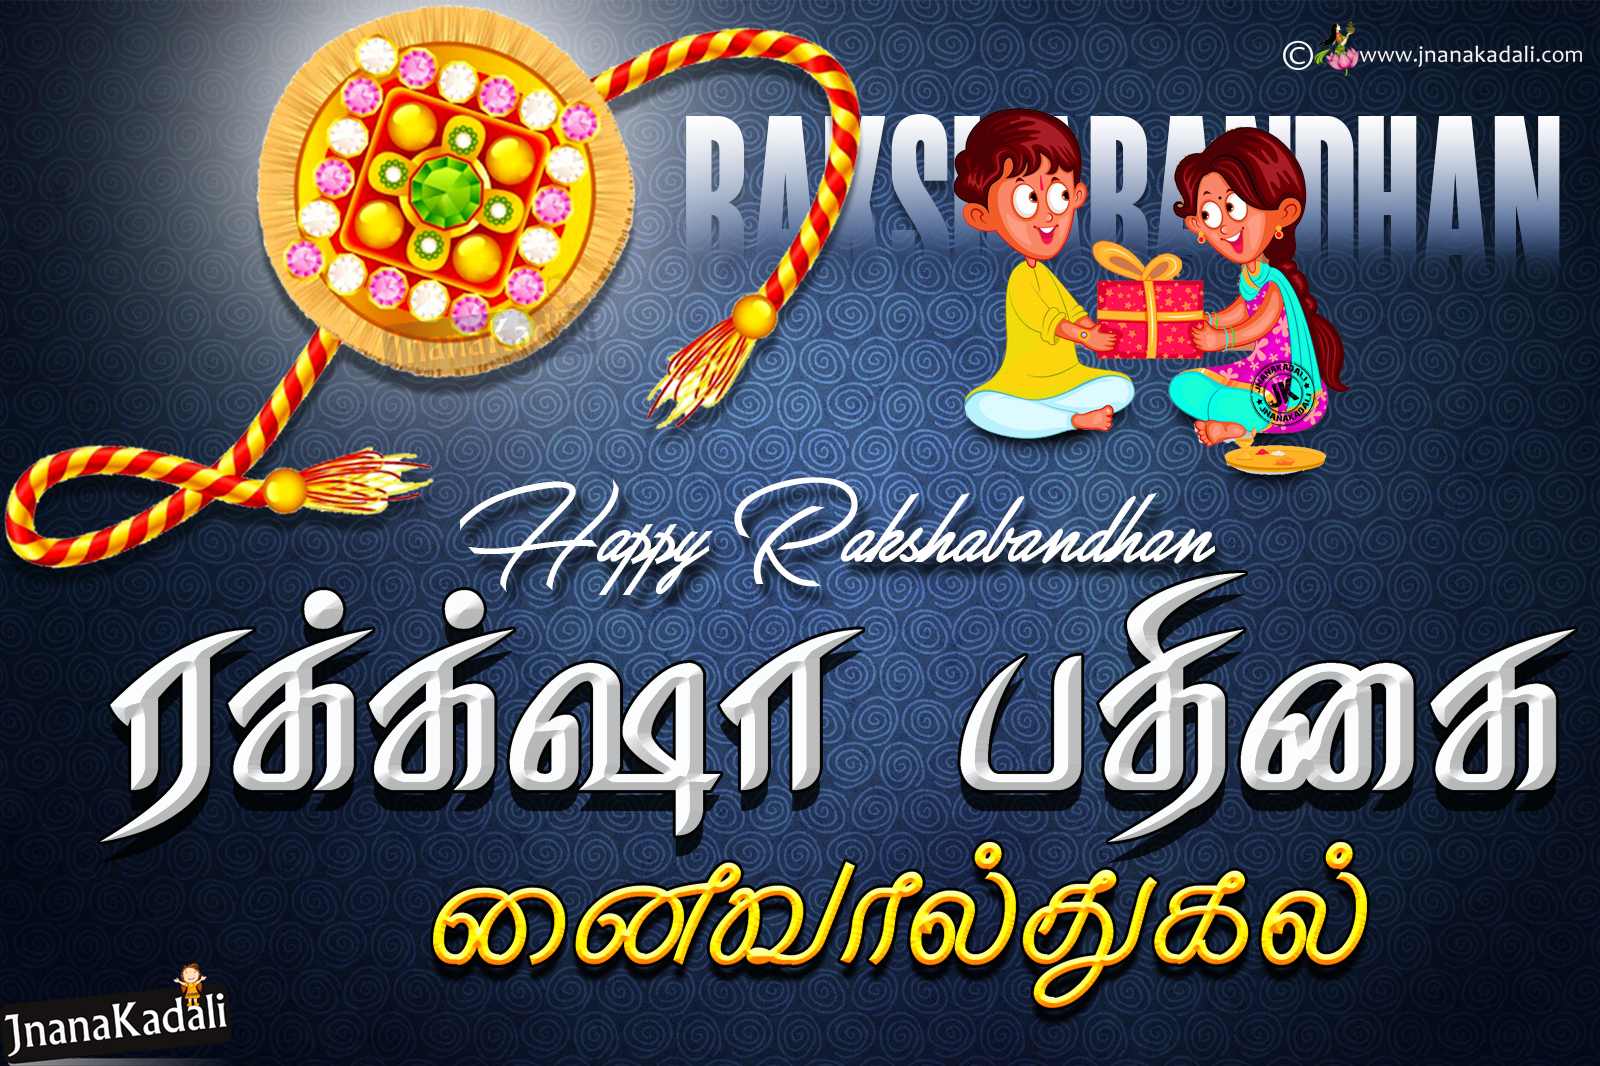 Advanced rakshabandhan greetings for sister rakshabandhan happy rakshabandhan quotes hd wallpapers happy rakshabandhan 2017 greetings have a blessed rakshabandhan festival kristyandbryce Image collections